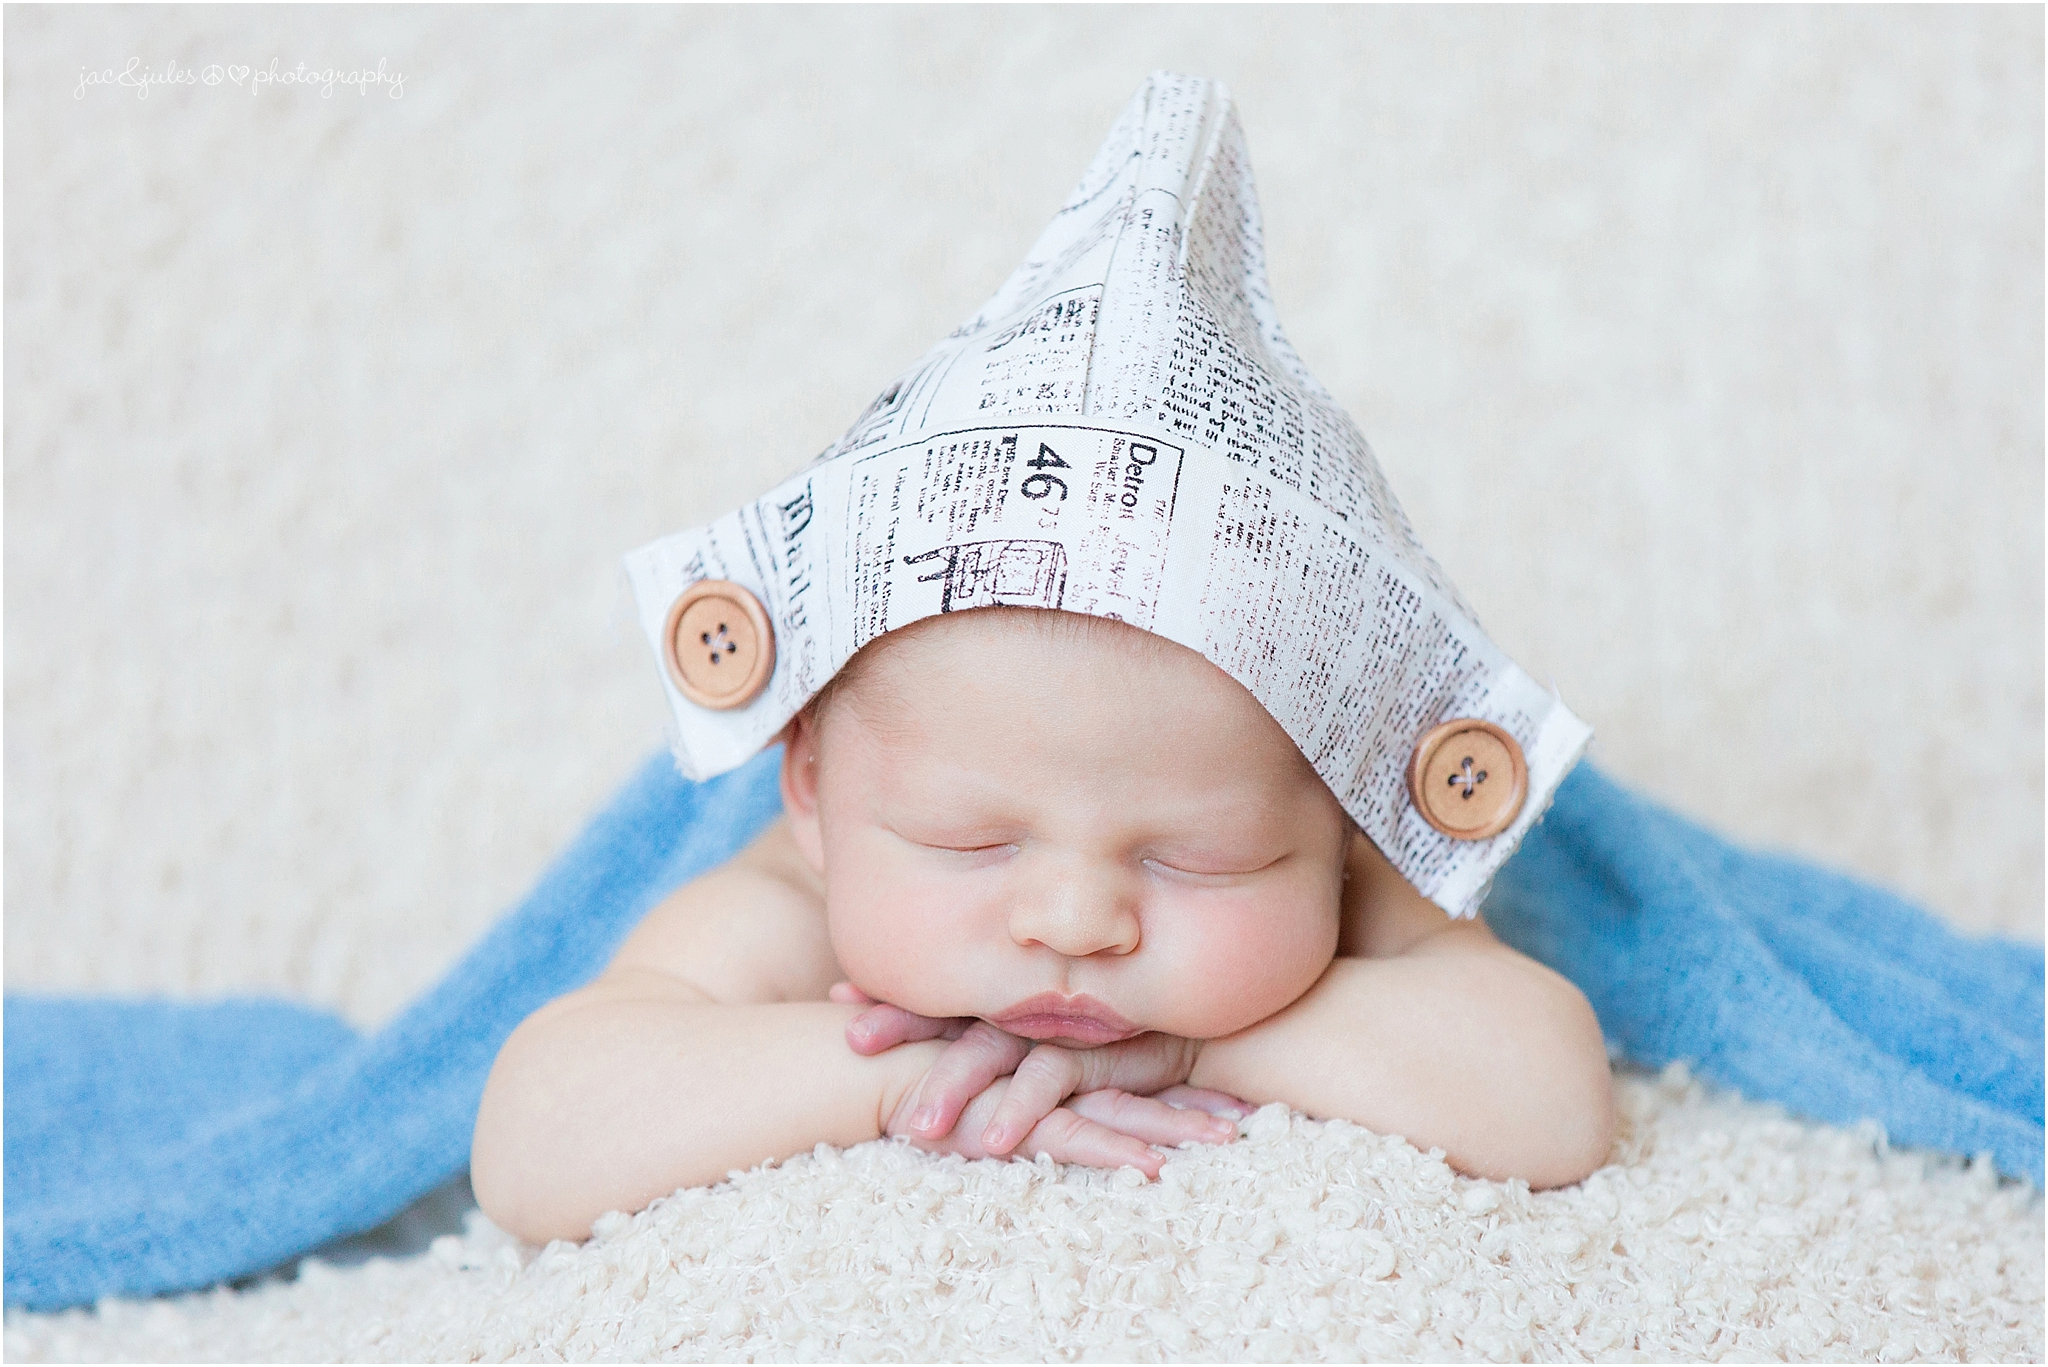 jacnjules photographs newborn and his family in their home in manalapan, nj